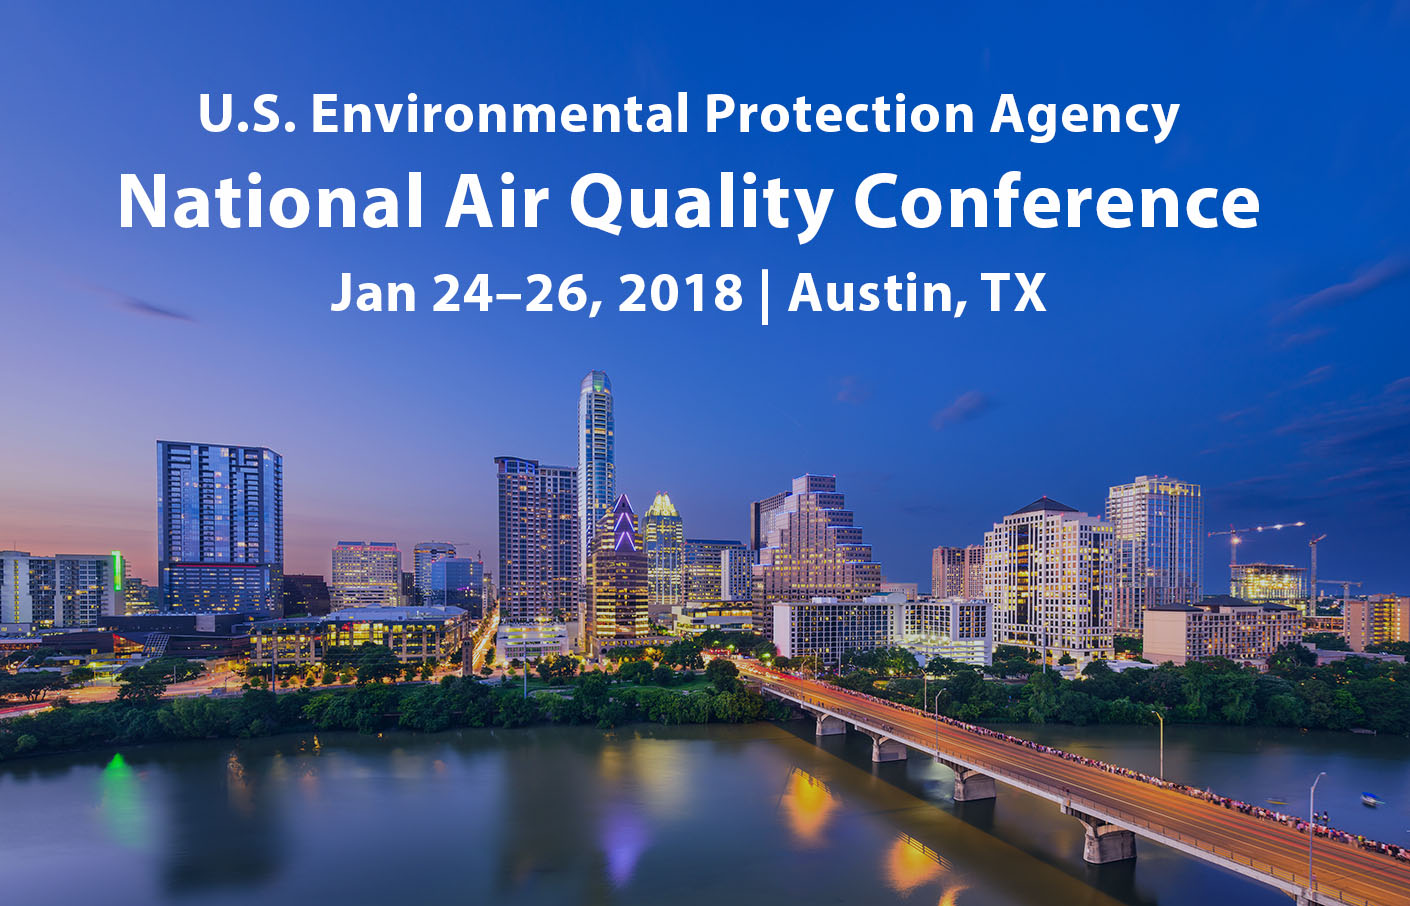 STI at the 2018 National Air Quality Conference